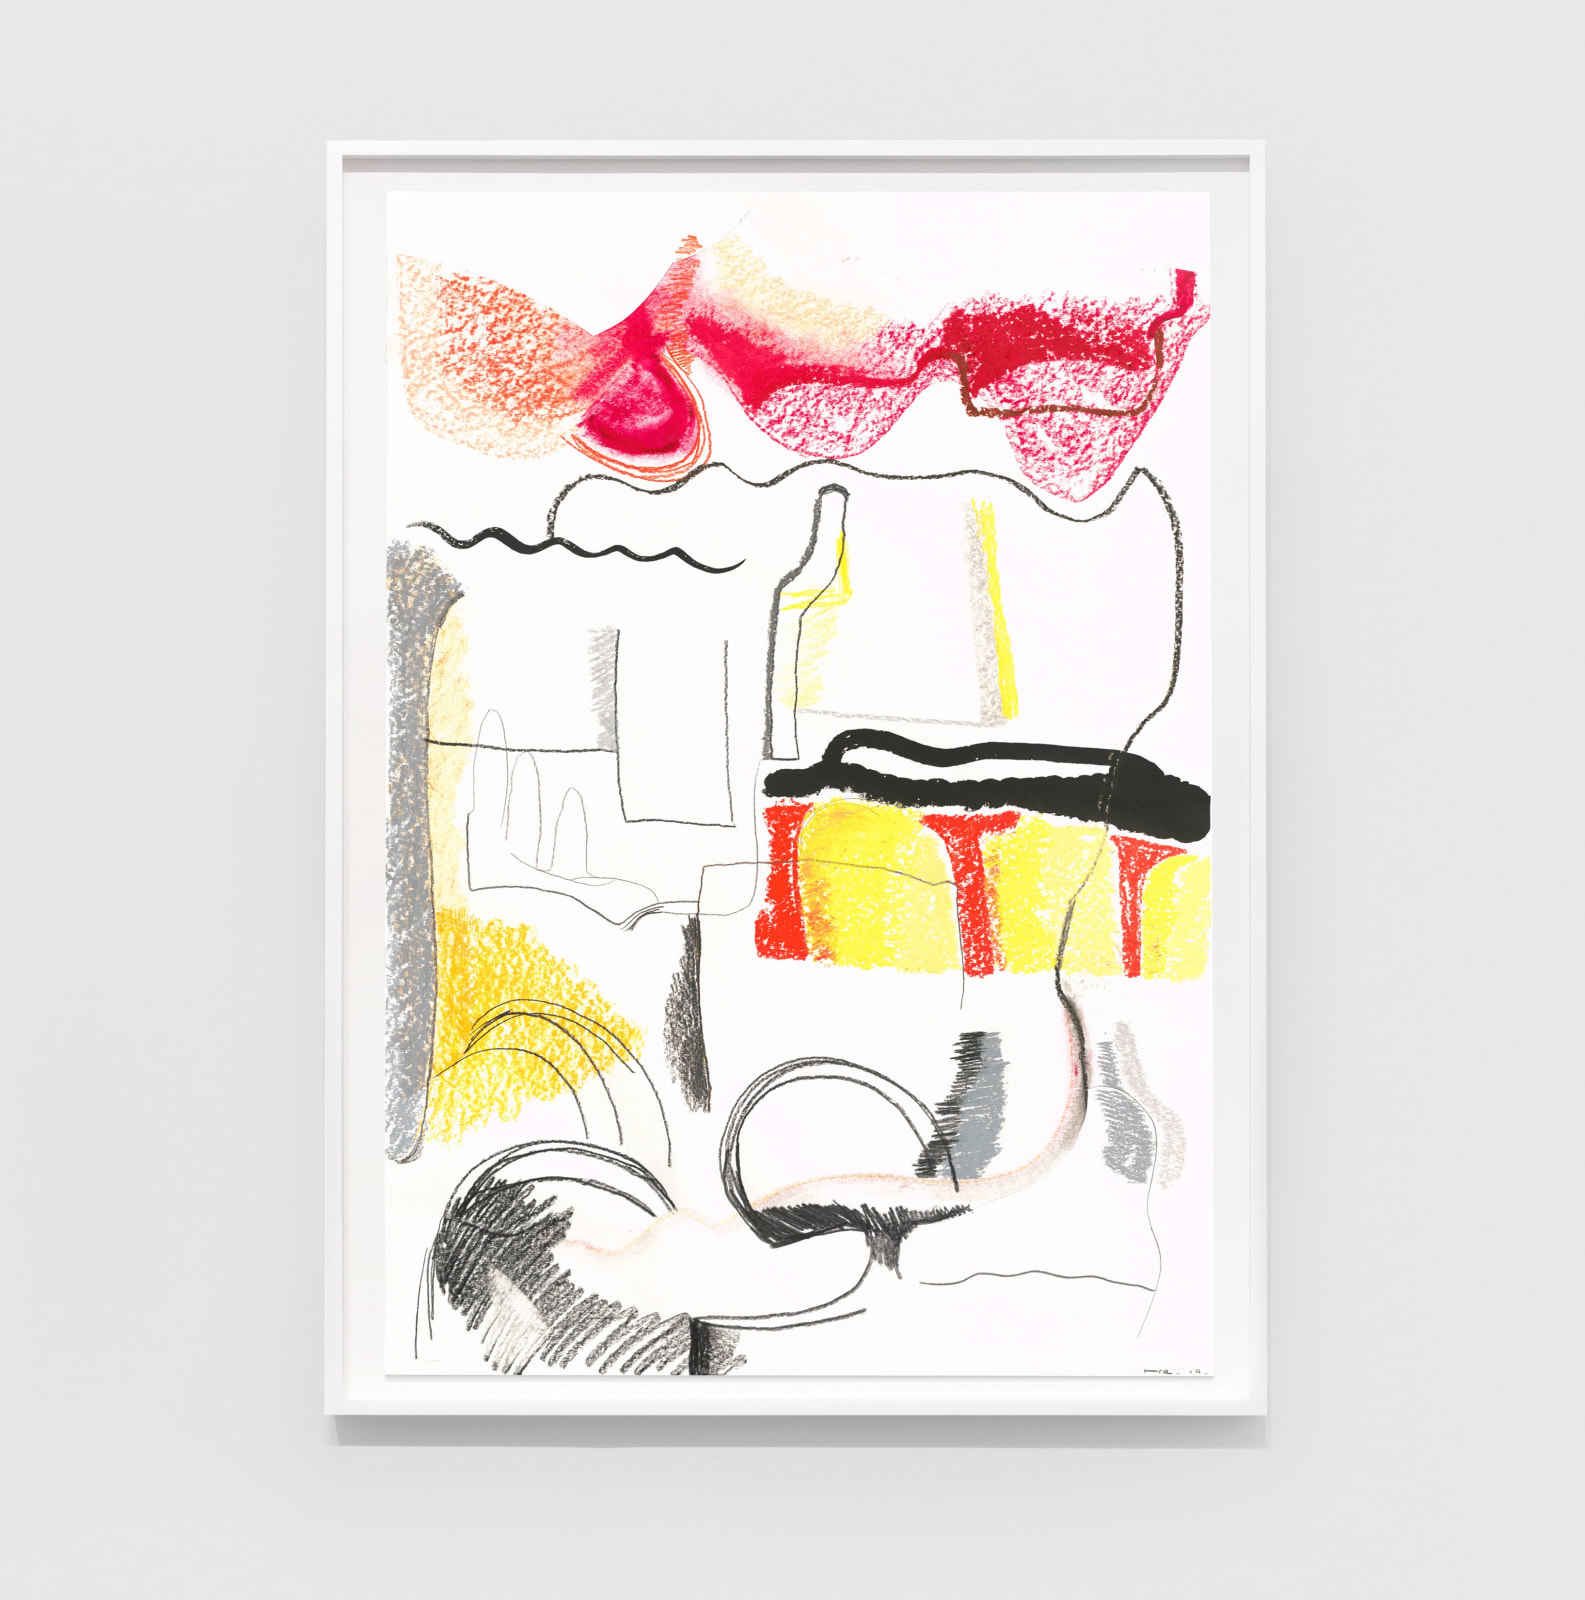 He Xiangyu Palate 19-1-24, 2019 Charcoal, pencil, colored pencil, oil stick, Japanese ink, acid-free oil-based marker, acid-free glue on paper 39 3/8 x 27 9/16 in (100 x 70 cm) $10,500